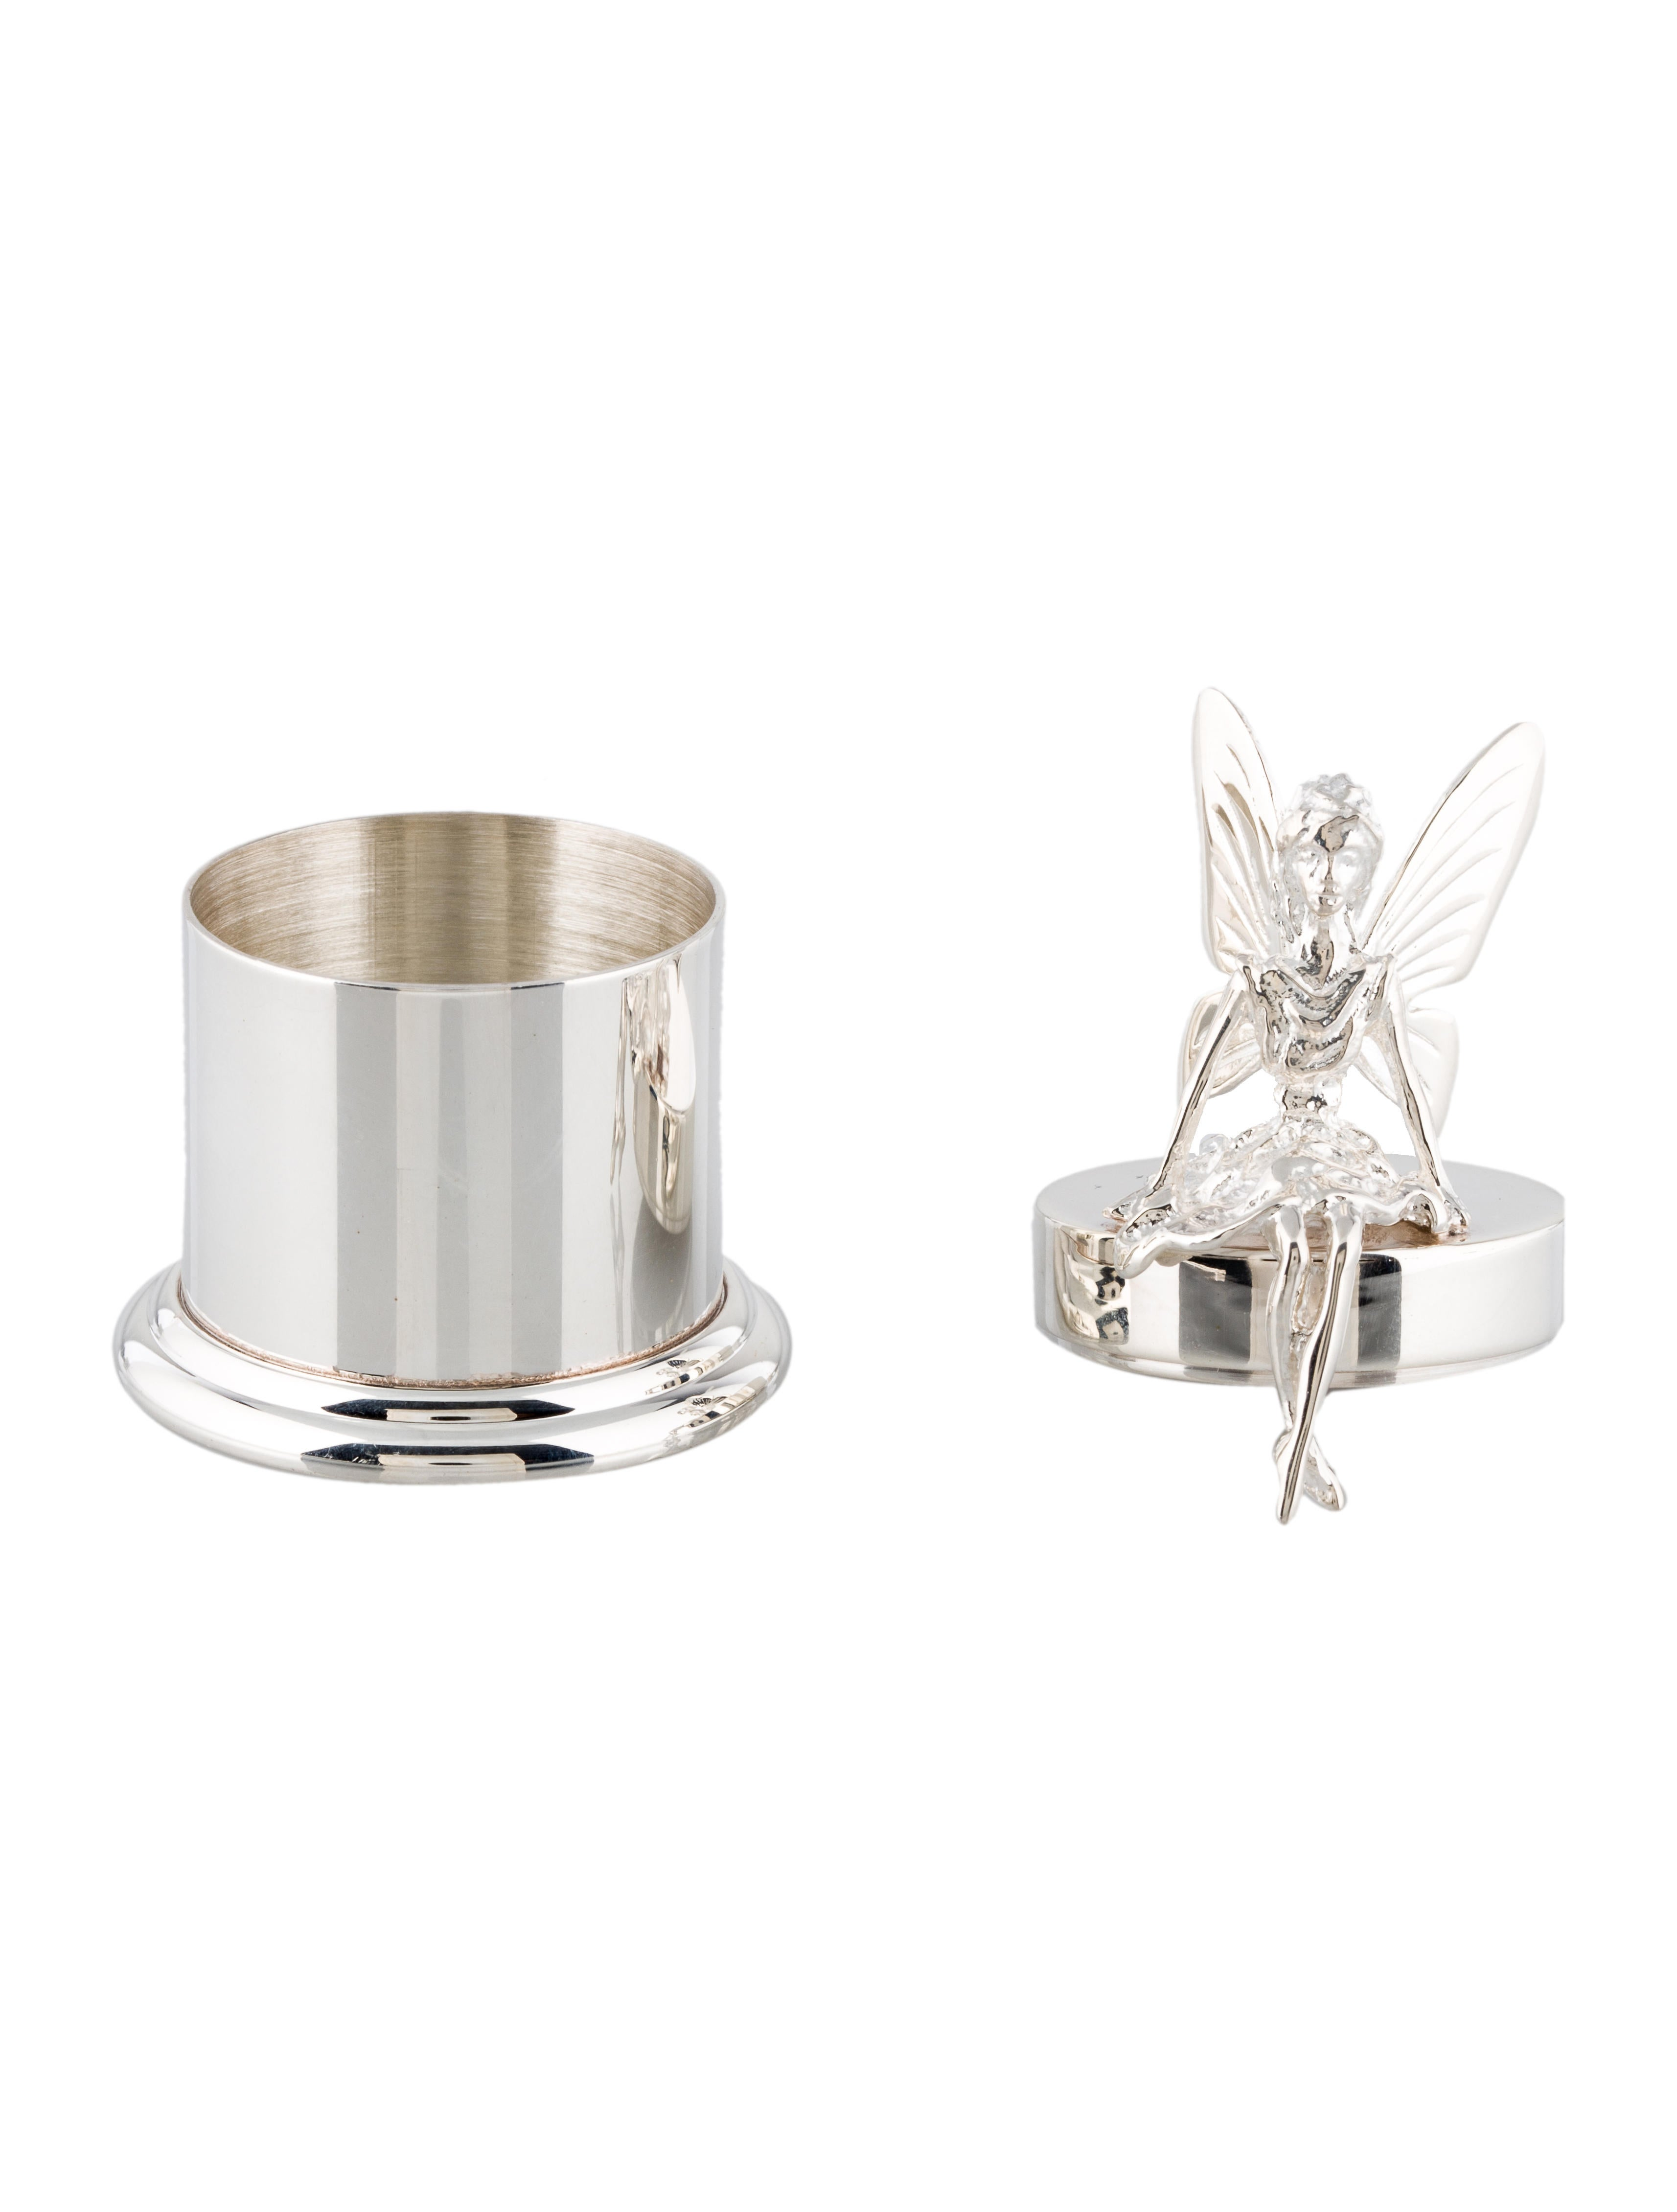 Sterling silver tooth fairy box decor and accessories for Artistic accents genuine silver decoration